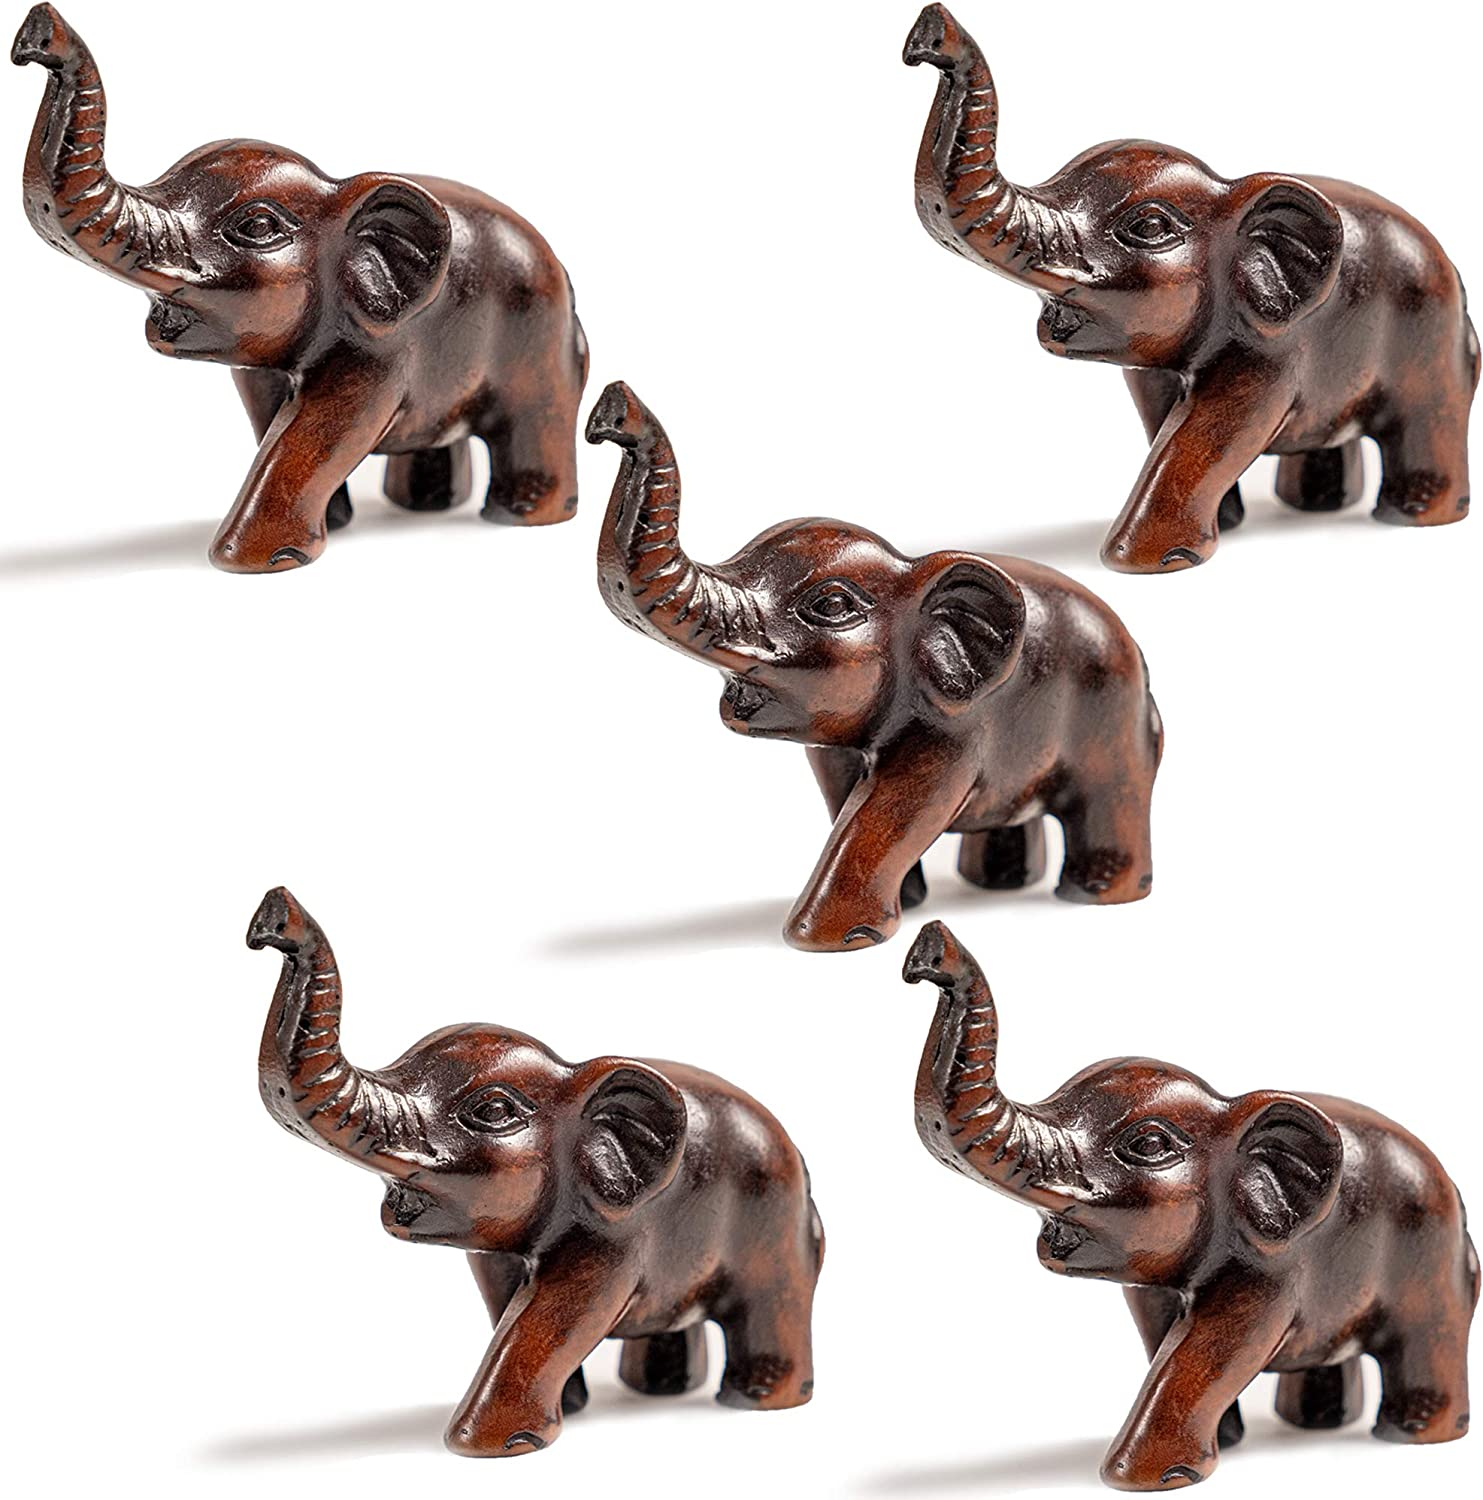 IYARA CRAFT Resin Feng Shui Elephant Animal Statues set of 5 Decorative Elephant Family Statues on Wave - Ideal for Modern & Rustic Settings - Small piece of Elephant Animals Figurine Statue Sculpture